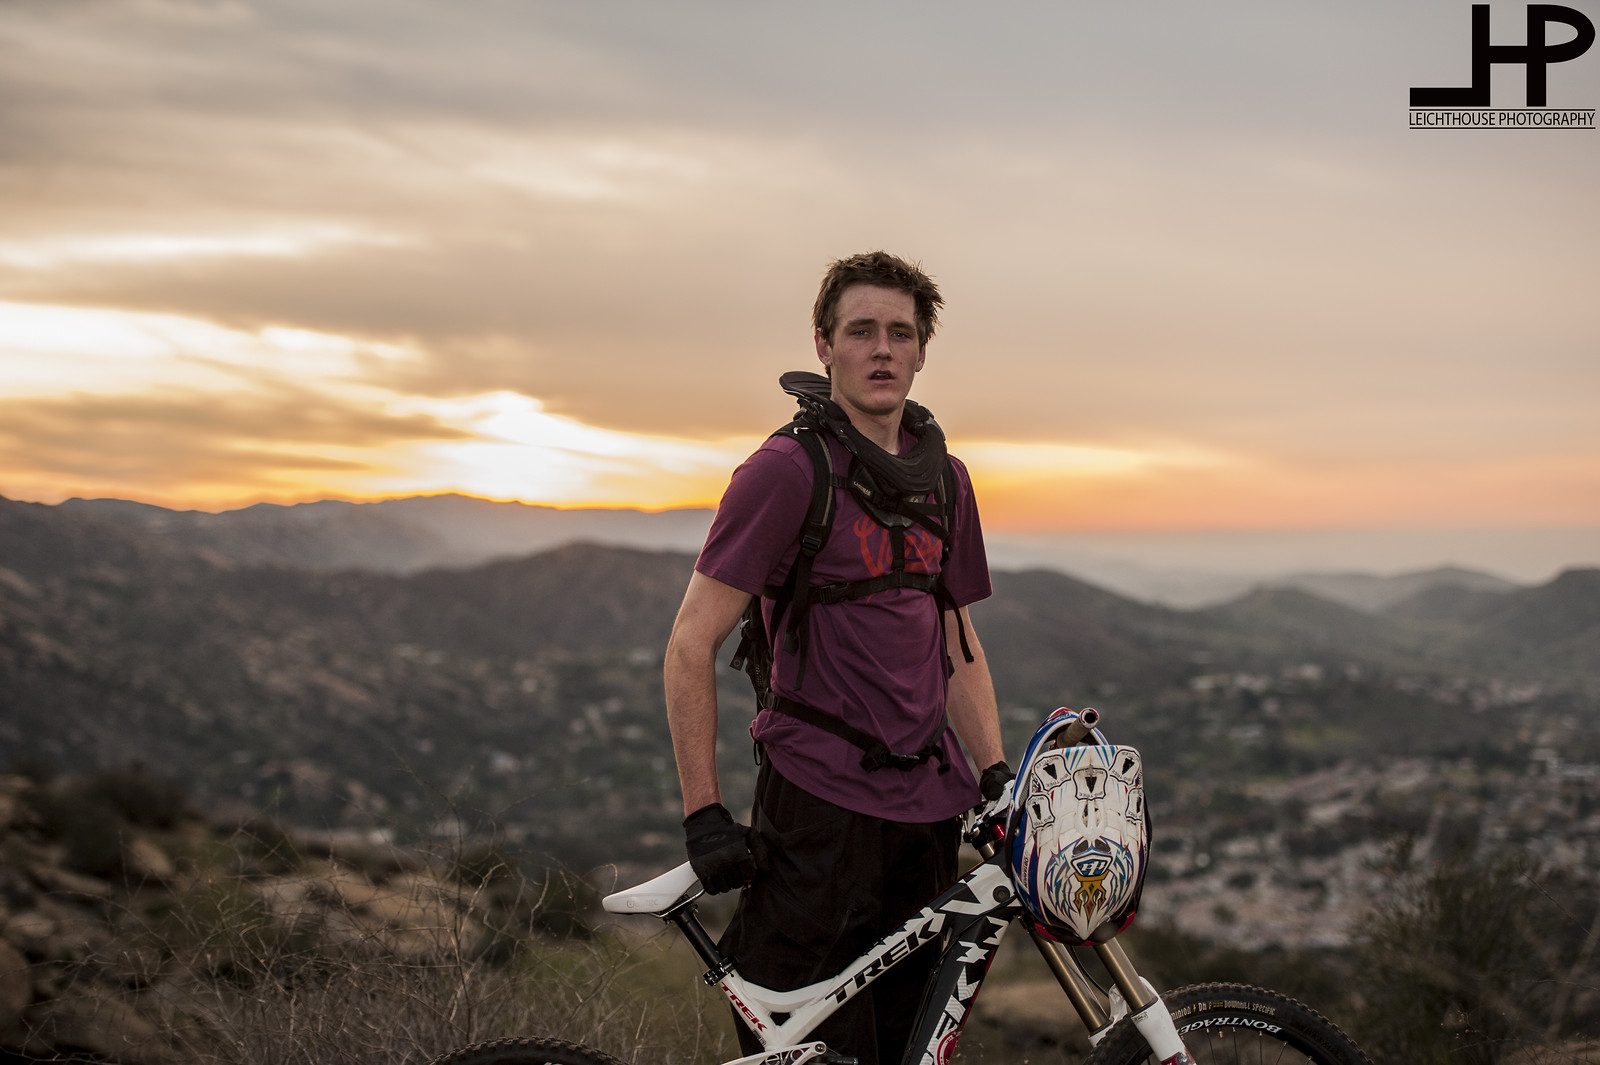 Curtis sunset - LeichtHouse photography - Mountain Biking Pictures - Vital MTB